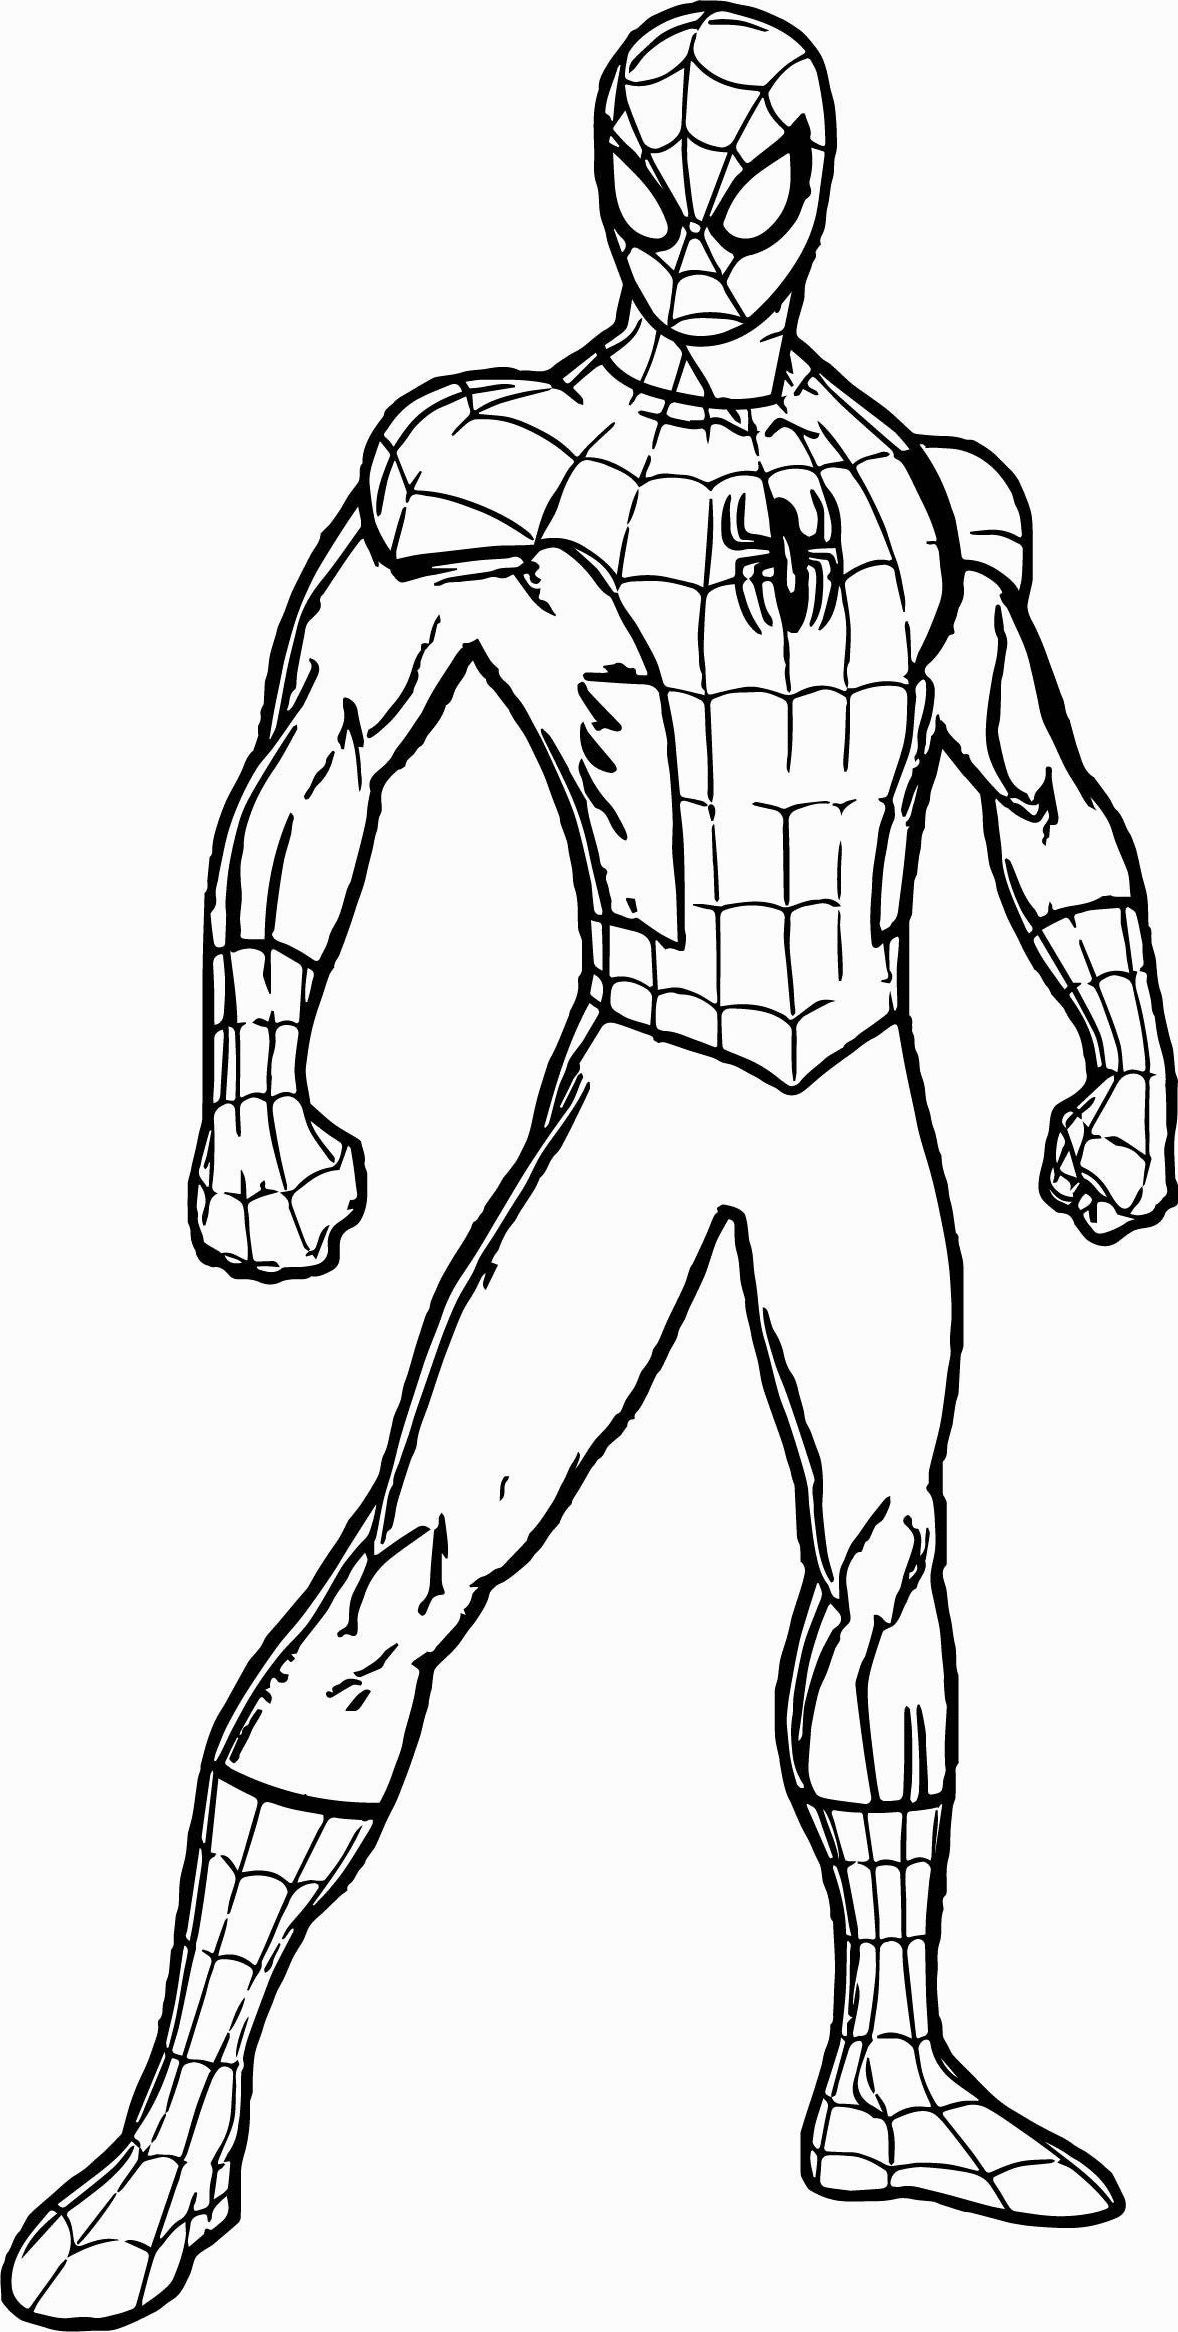 Free Superhero Coloring Pages For Kids Superhero Coloring Superhero Coloring Pages Spiderman Coloring